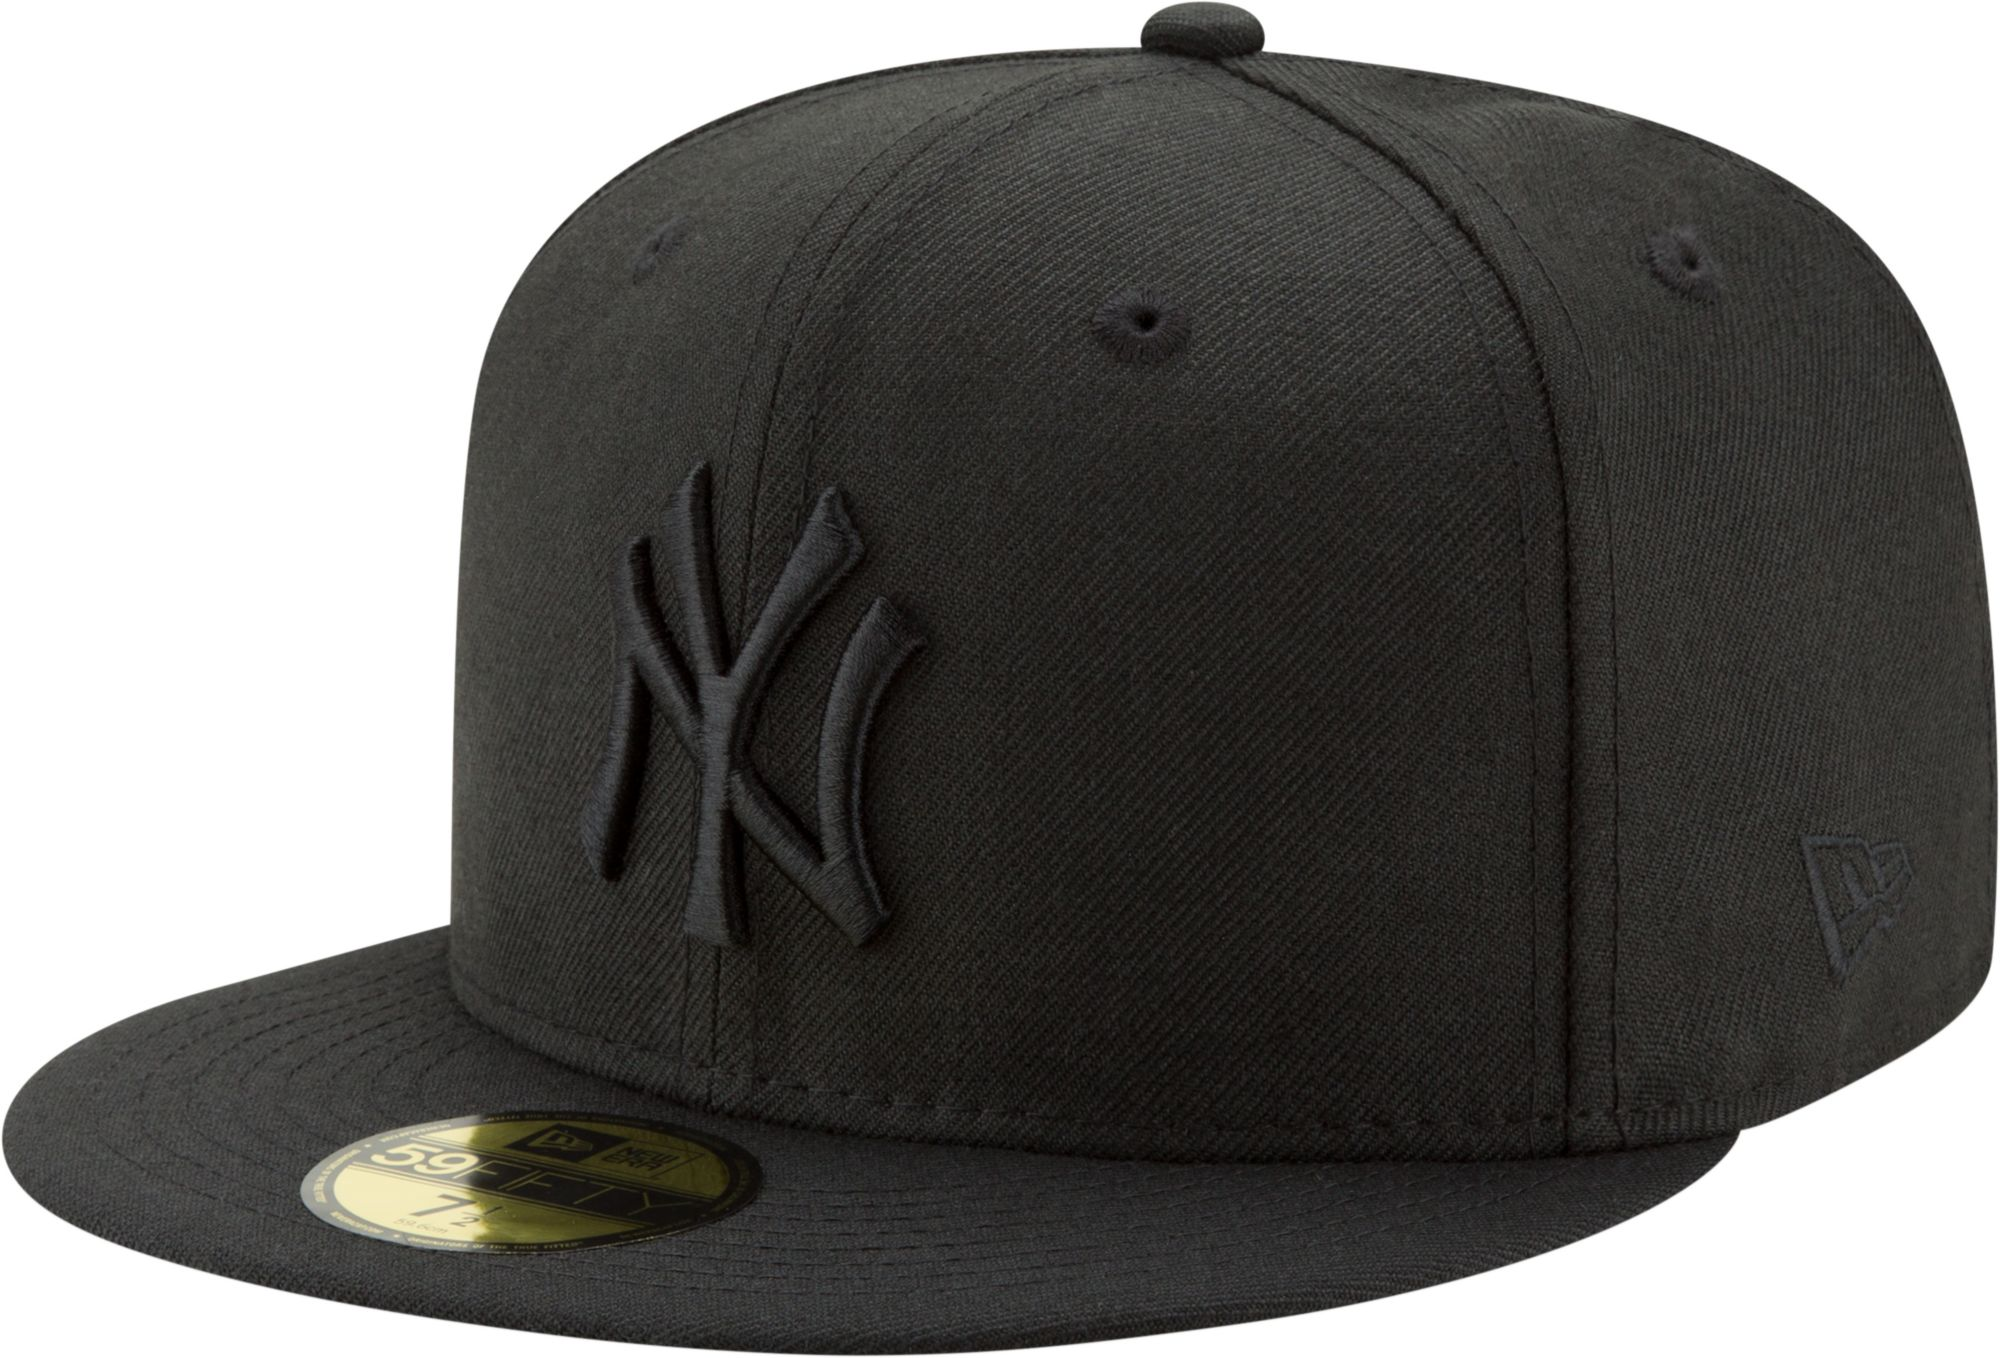 ... sale new era mens new york yankees 59fifty black on black fitted hat  7ba0c e5e58 1a1ccc45e6a